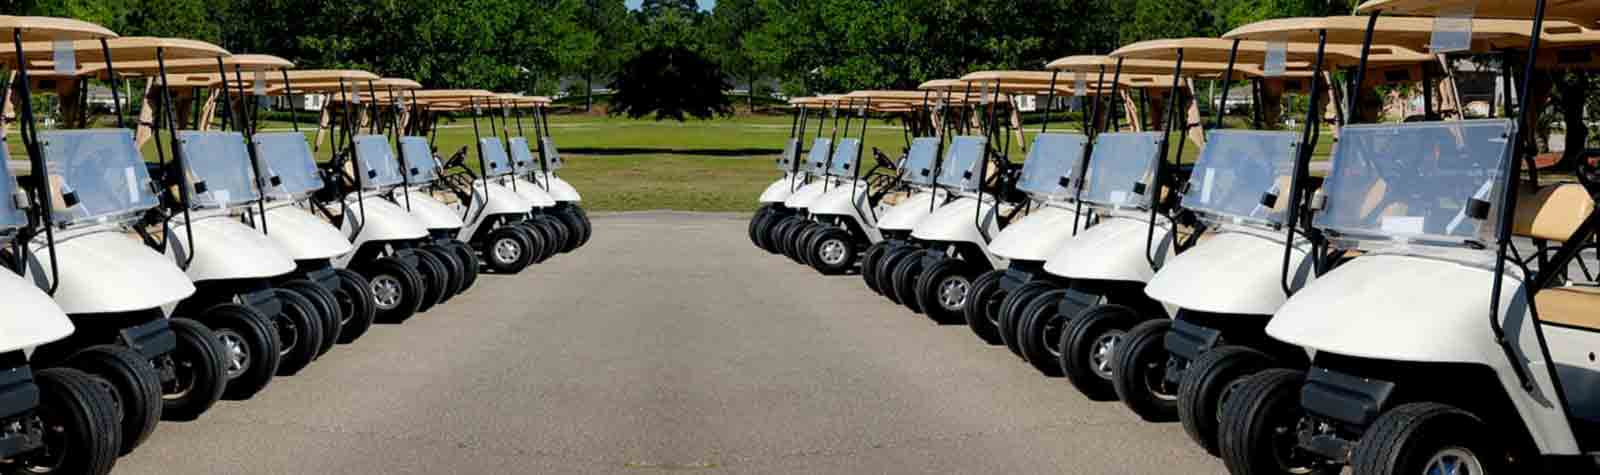 Best Golf Cart Batteries Reviews [2021] – Recommended by Experts